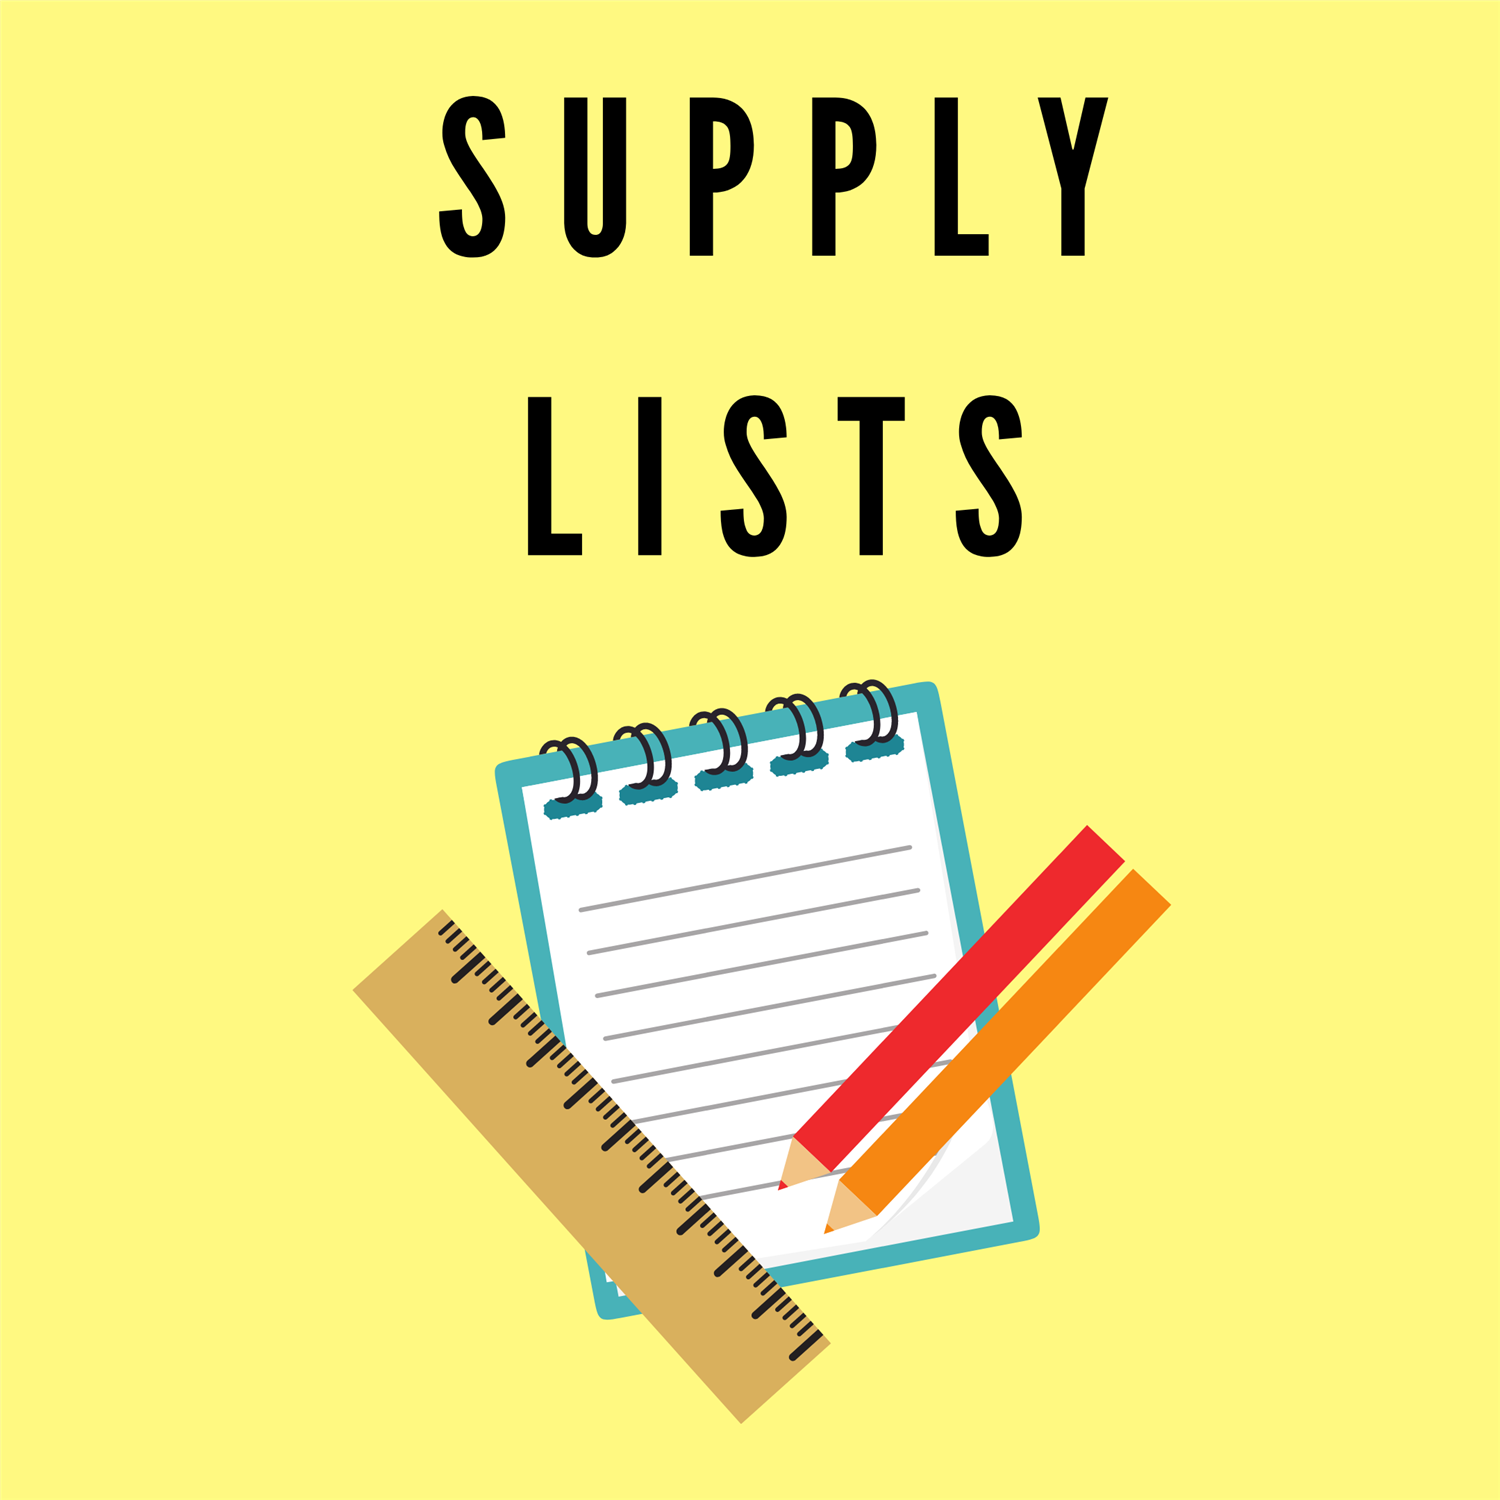 decorative image that says supply lists and shows a piece of paper and pencil